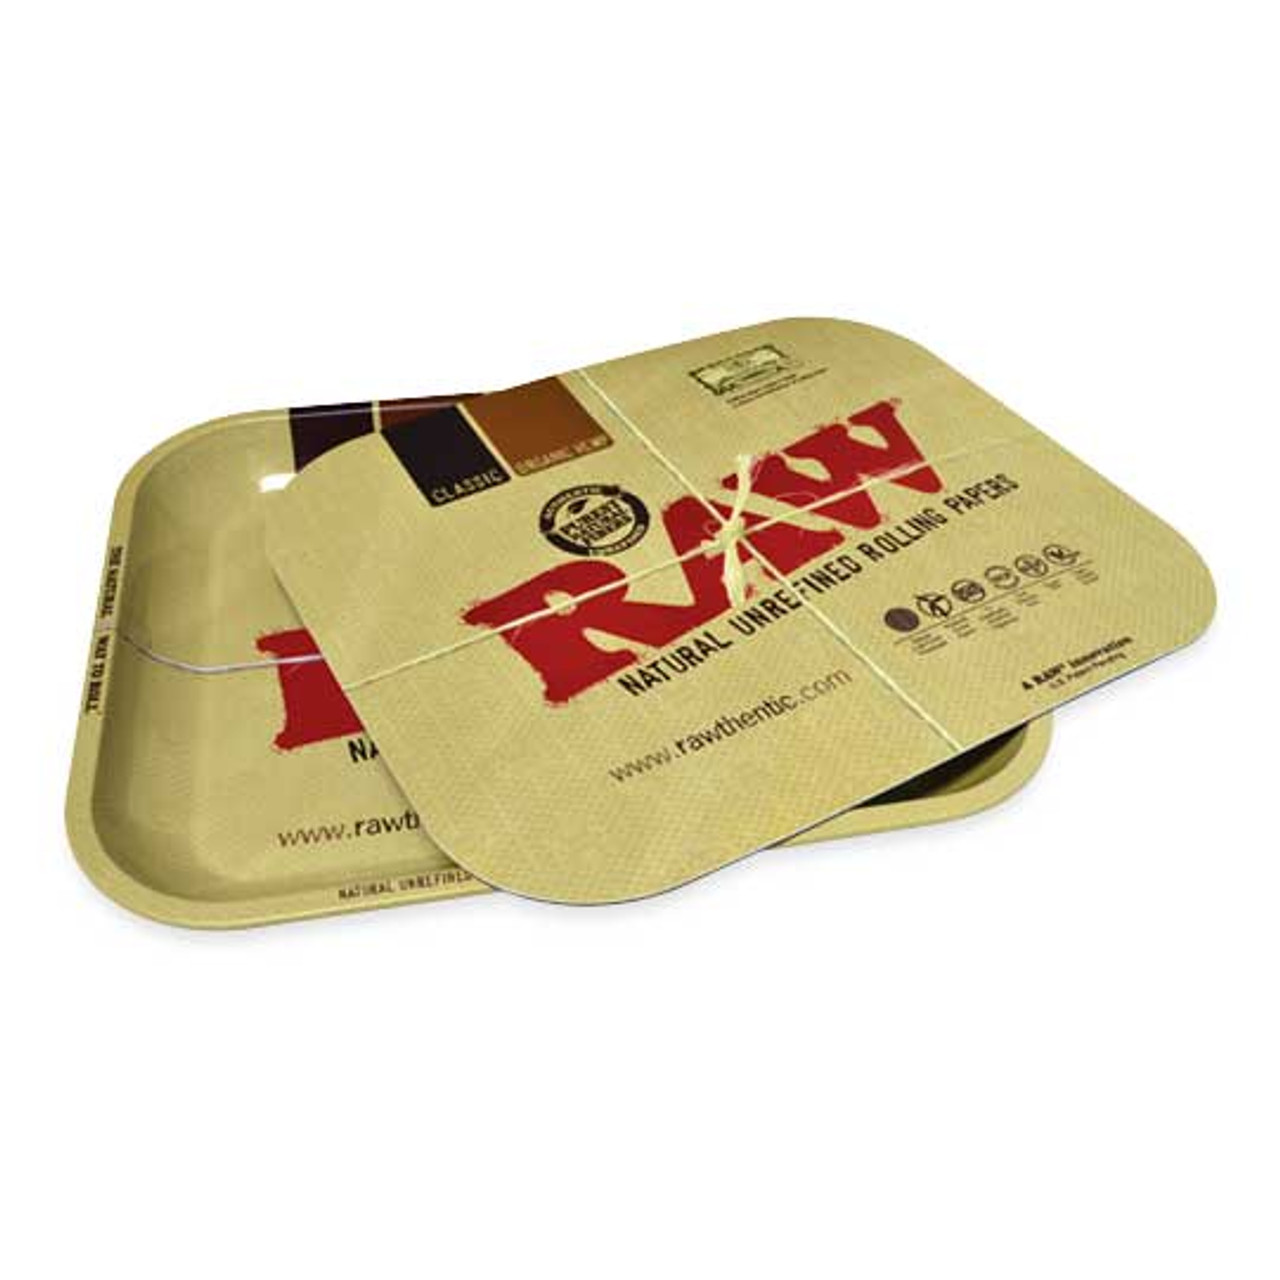 Classic Tray Cover - Rolling Tray not included